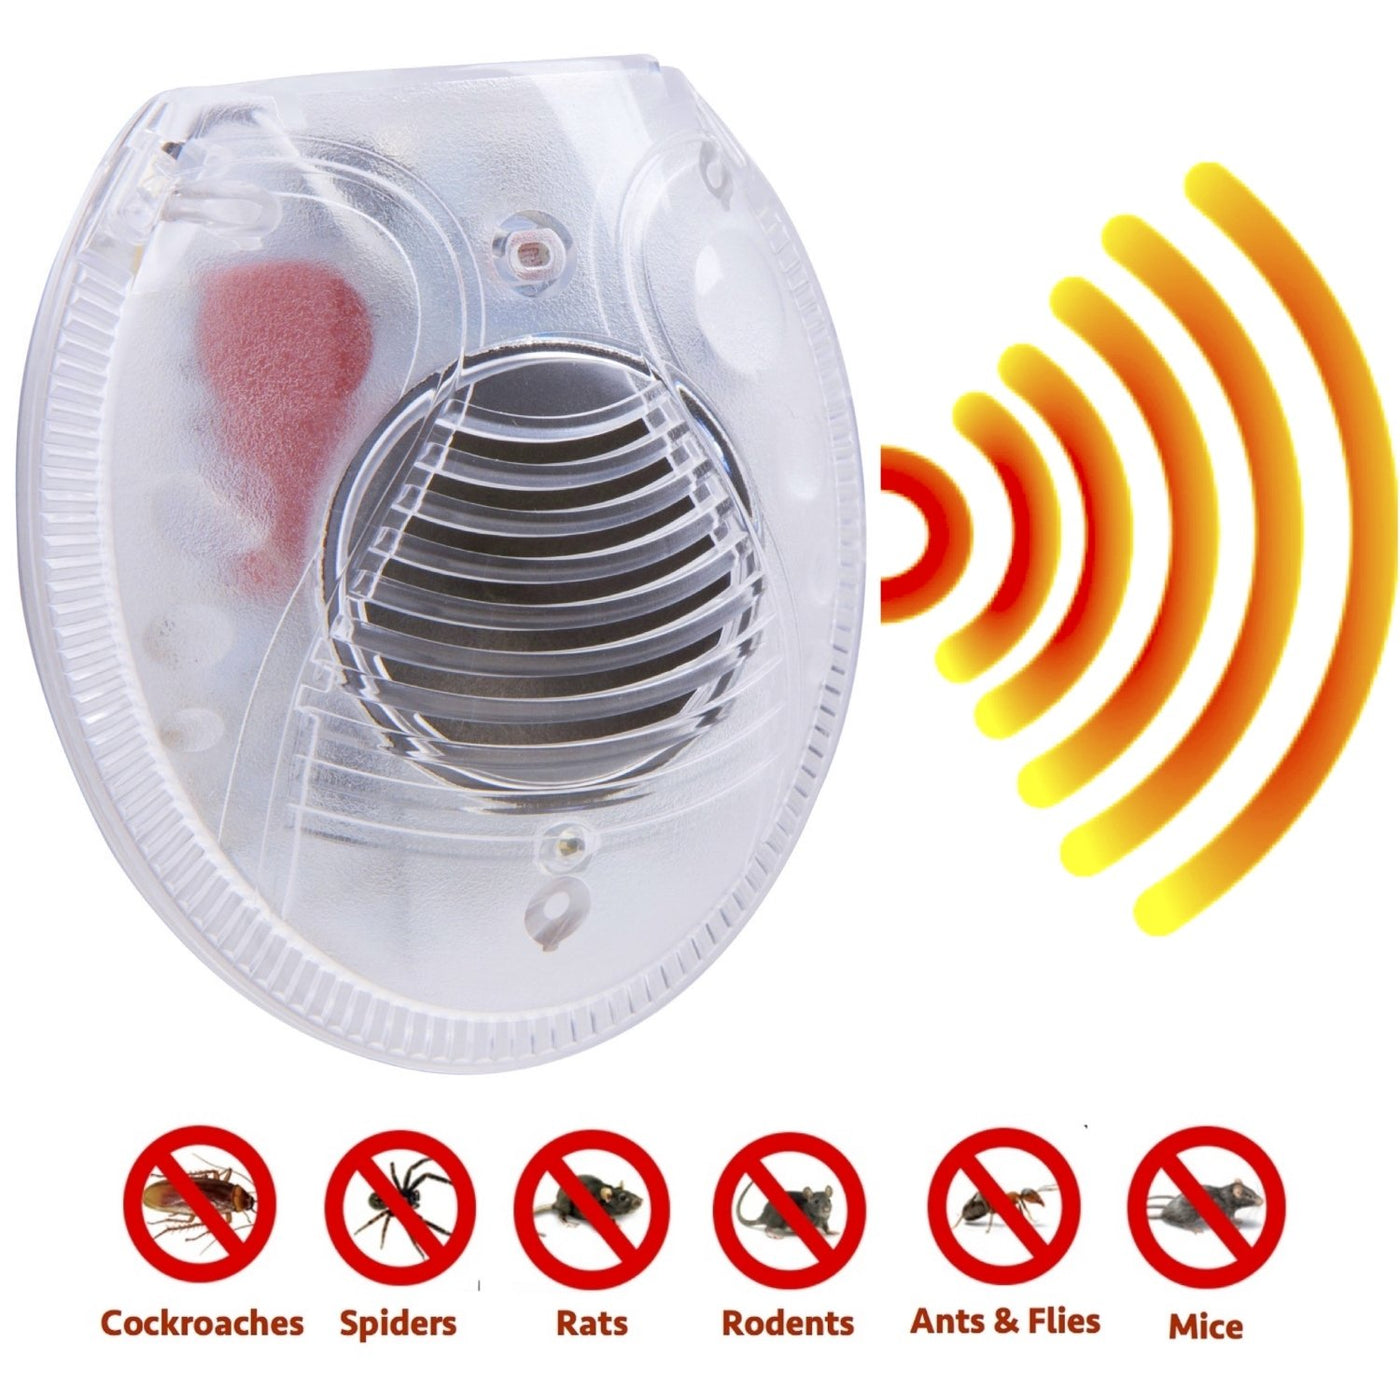 Pest Repeller Device - Pest Repeller 6 Pack - Ultrasonic & Electromagnetic Plug In Pest Repellent Device